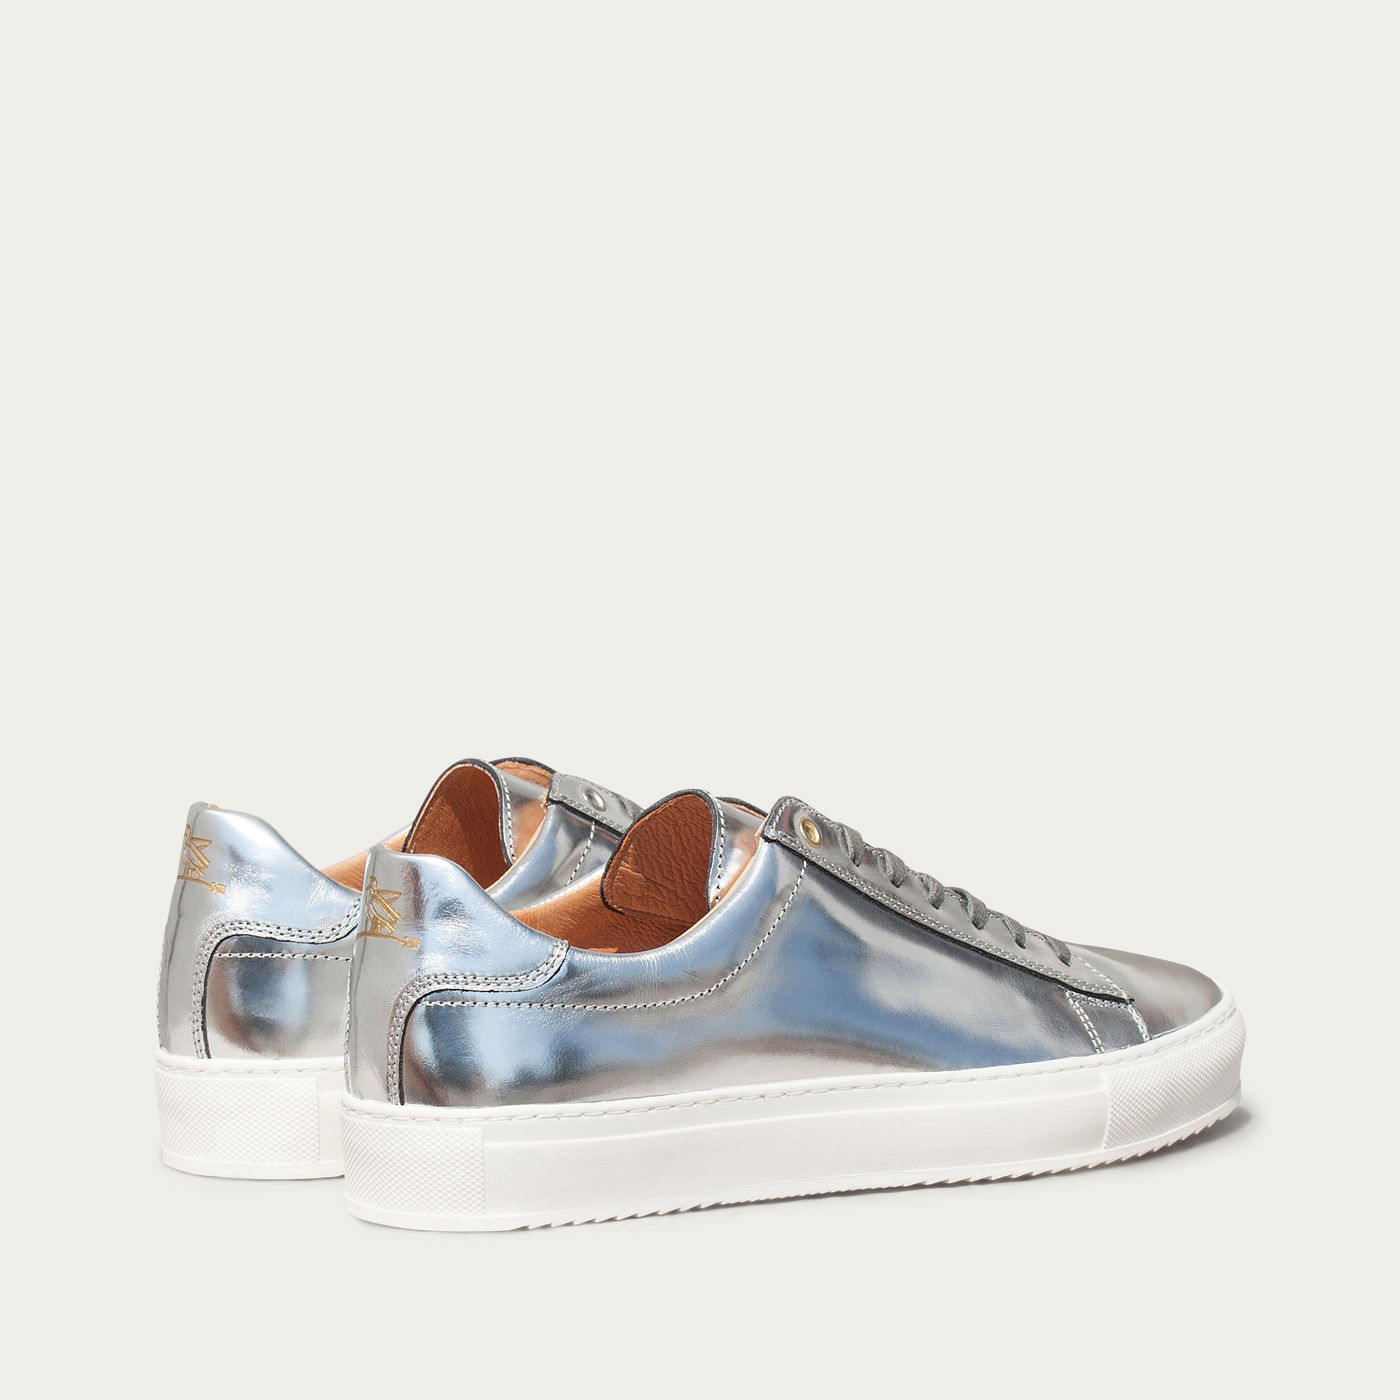 Mirror Leather Taranta Sneakers 1